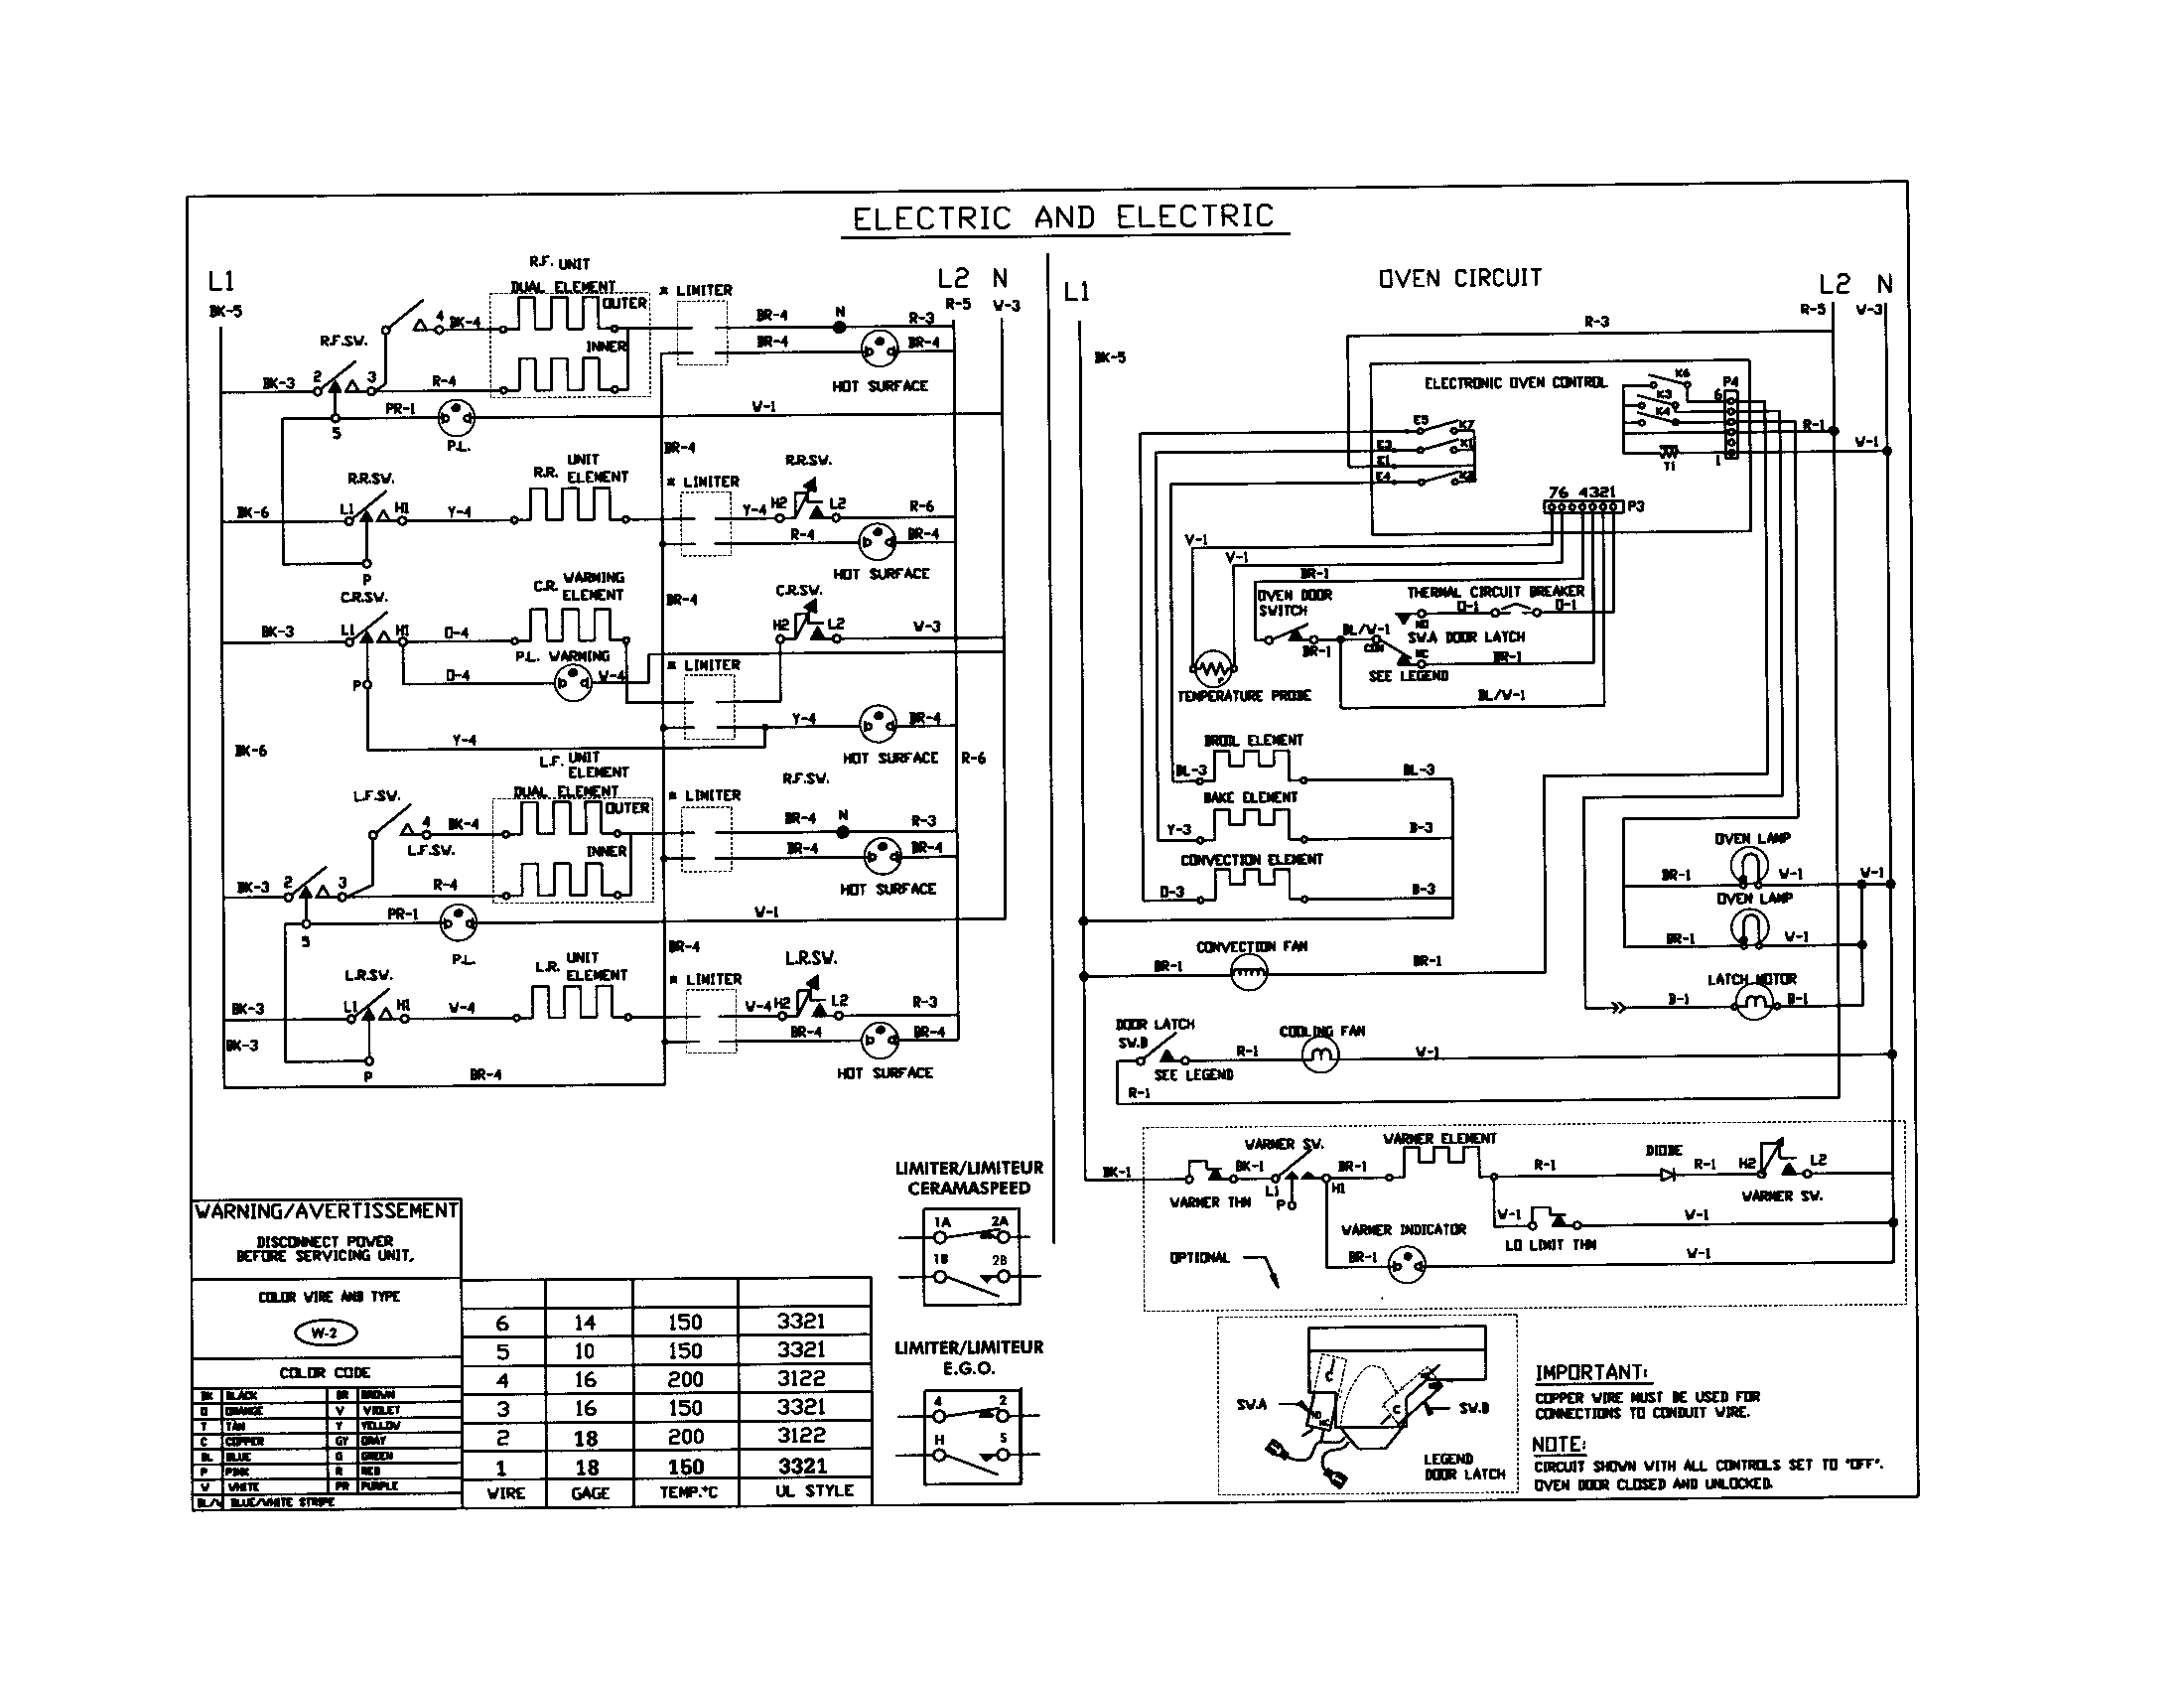 Electric Range Wiring Diagram - Search For Wiring Diagrams •